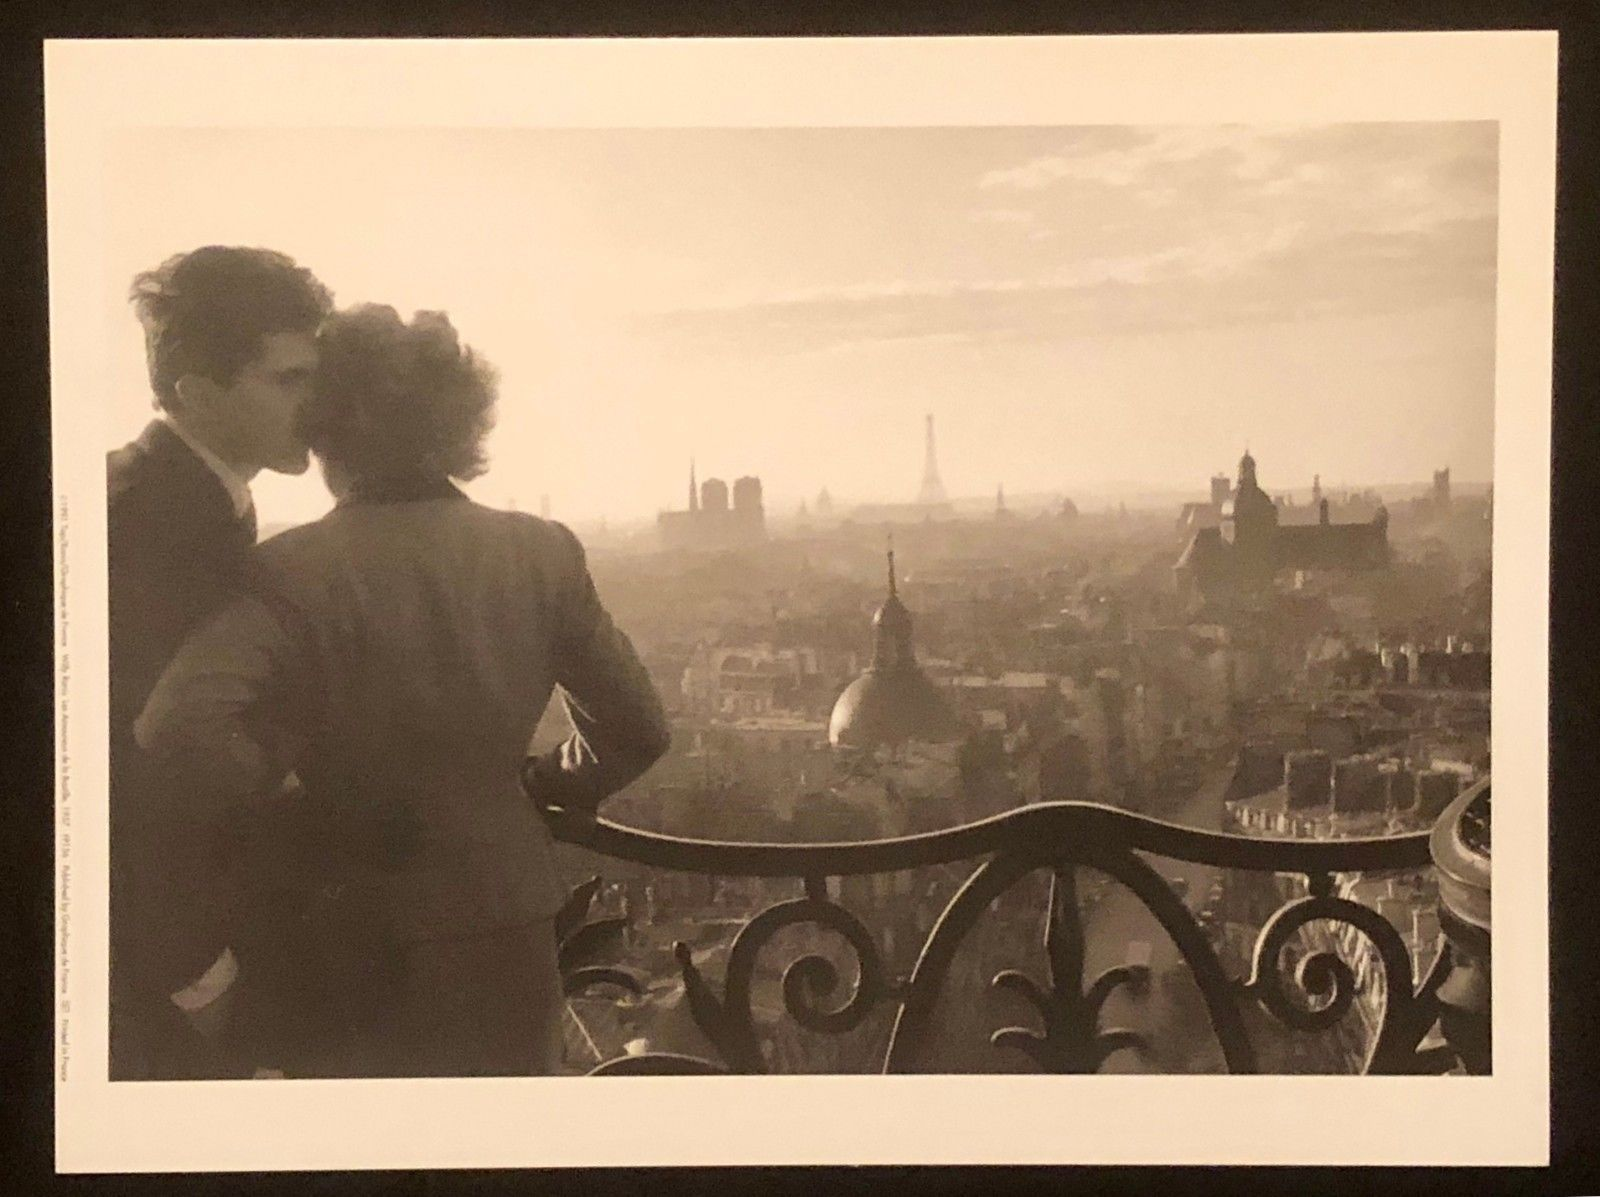 Primary image for WILLY RONIS Photograph Les Amoureux Paris 9x12 Lithograph Portfolio Print